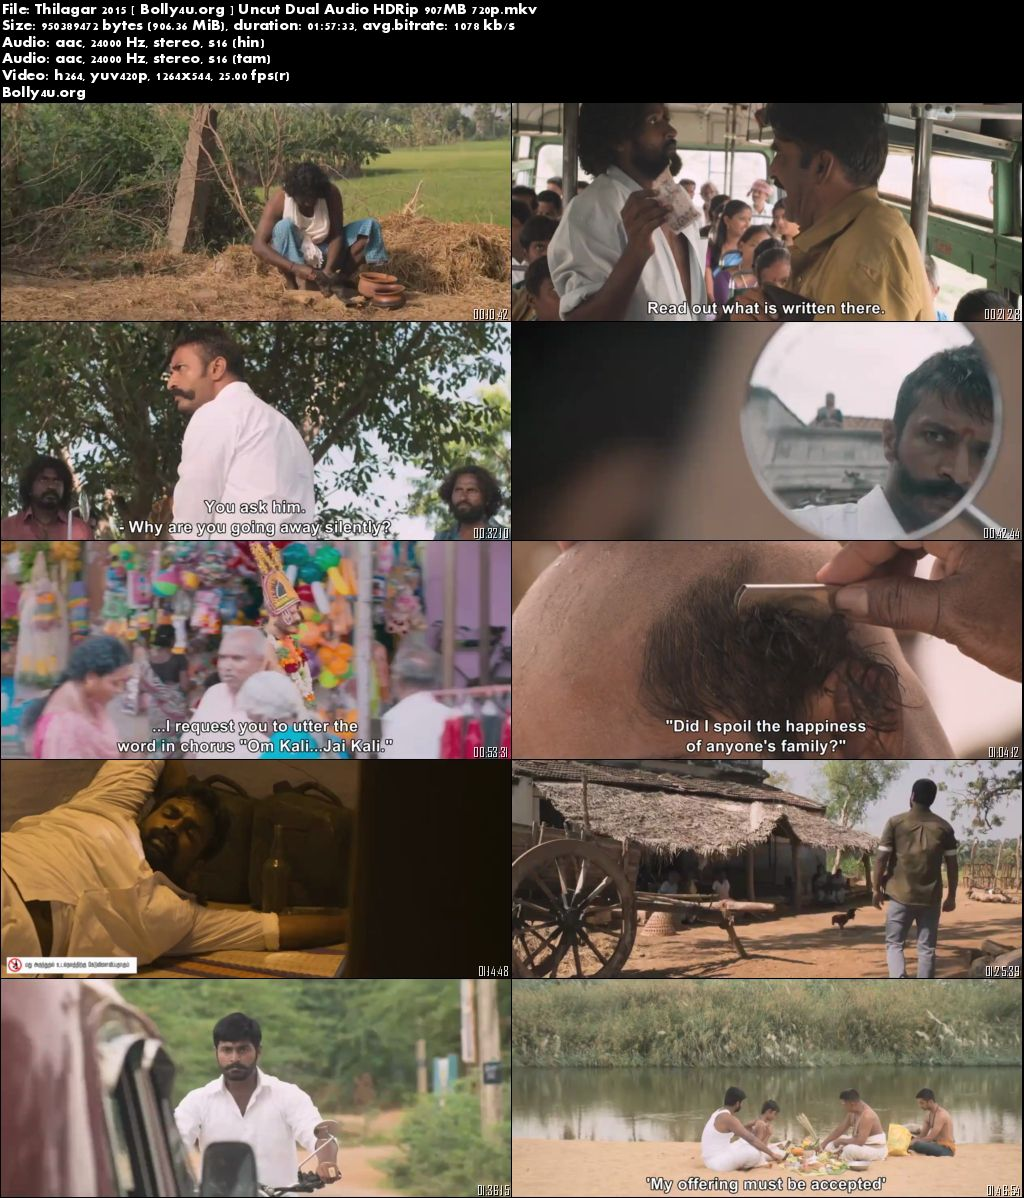 Thilagar 2015 HDRip 900MB UNCUT Hindi Dual Audio 720p Download